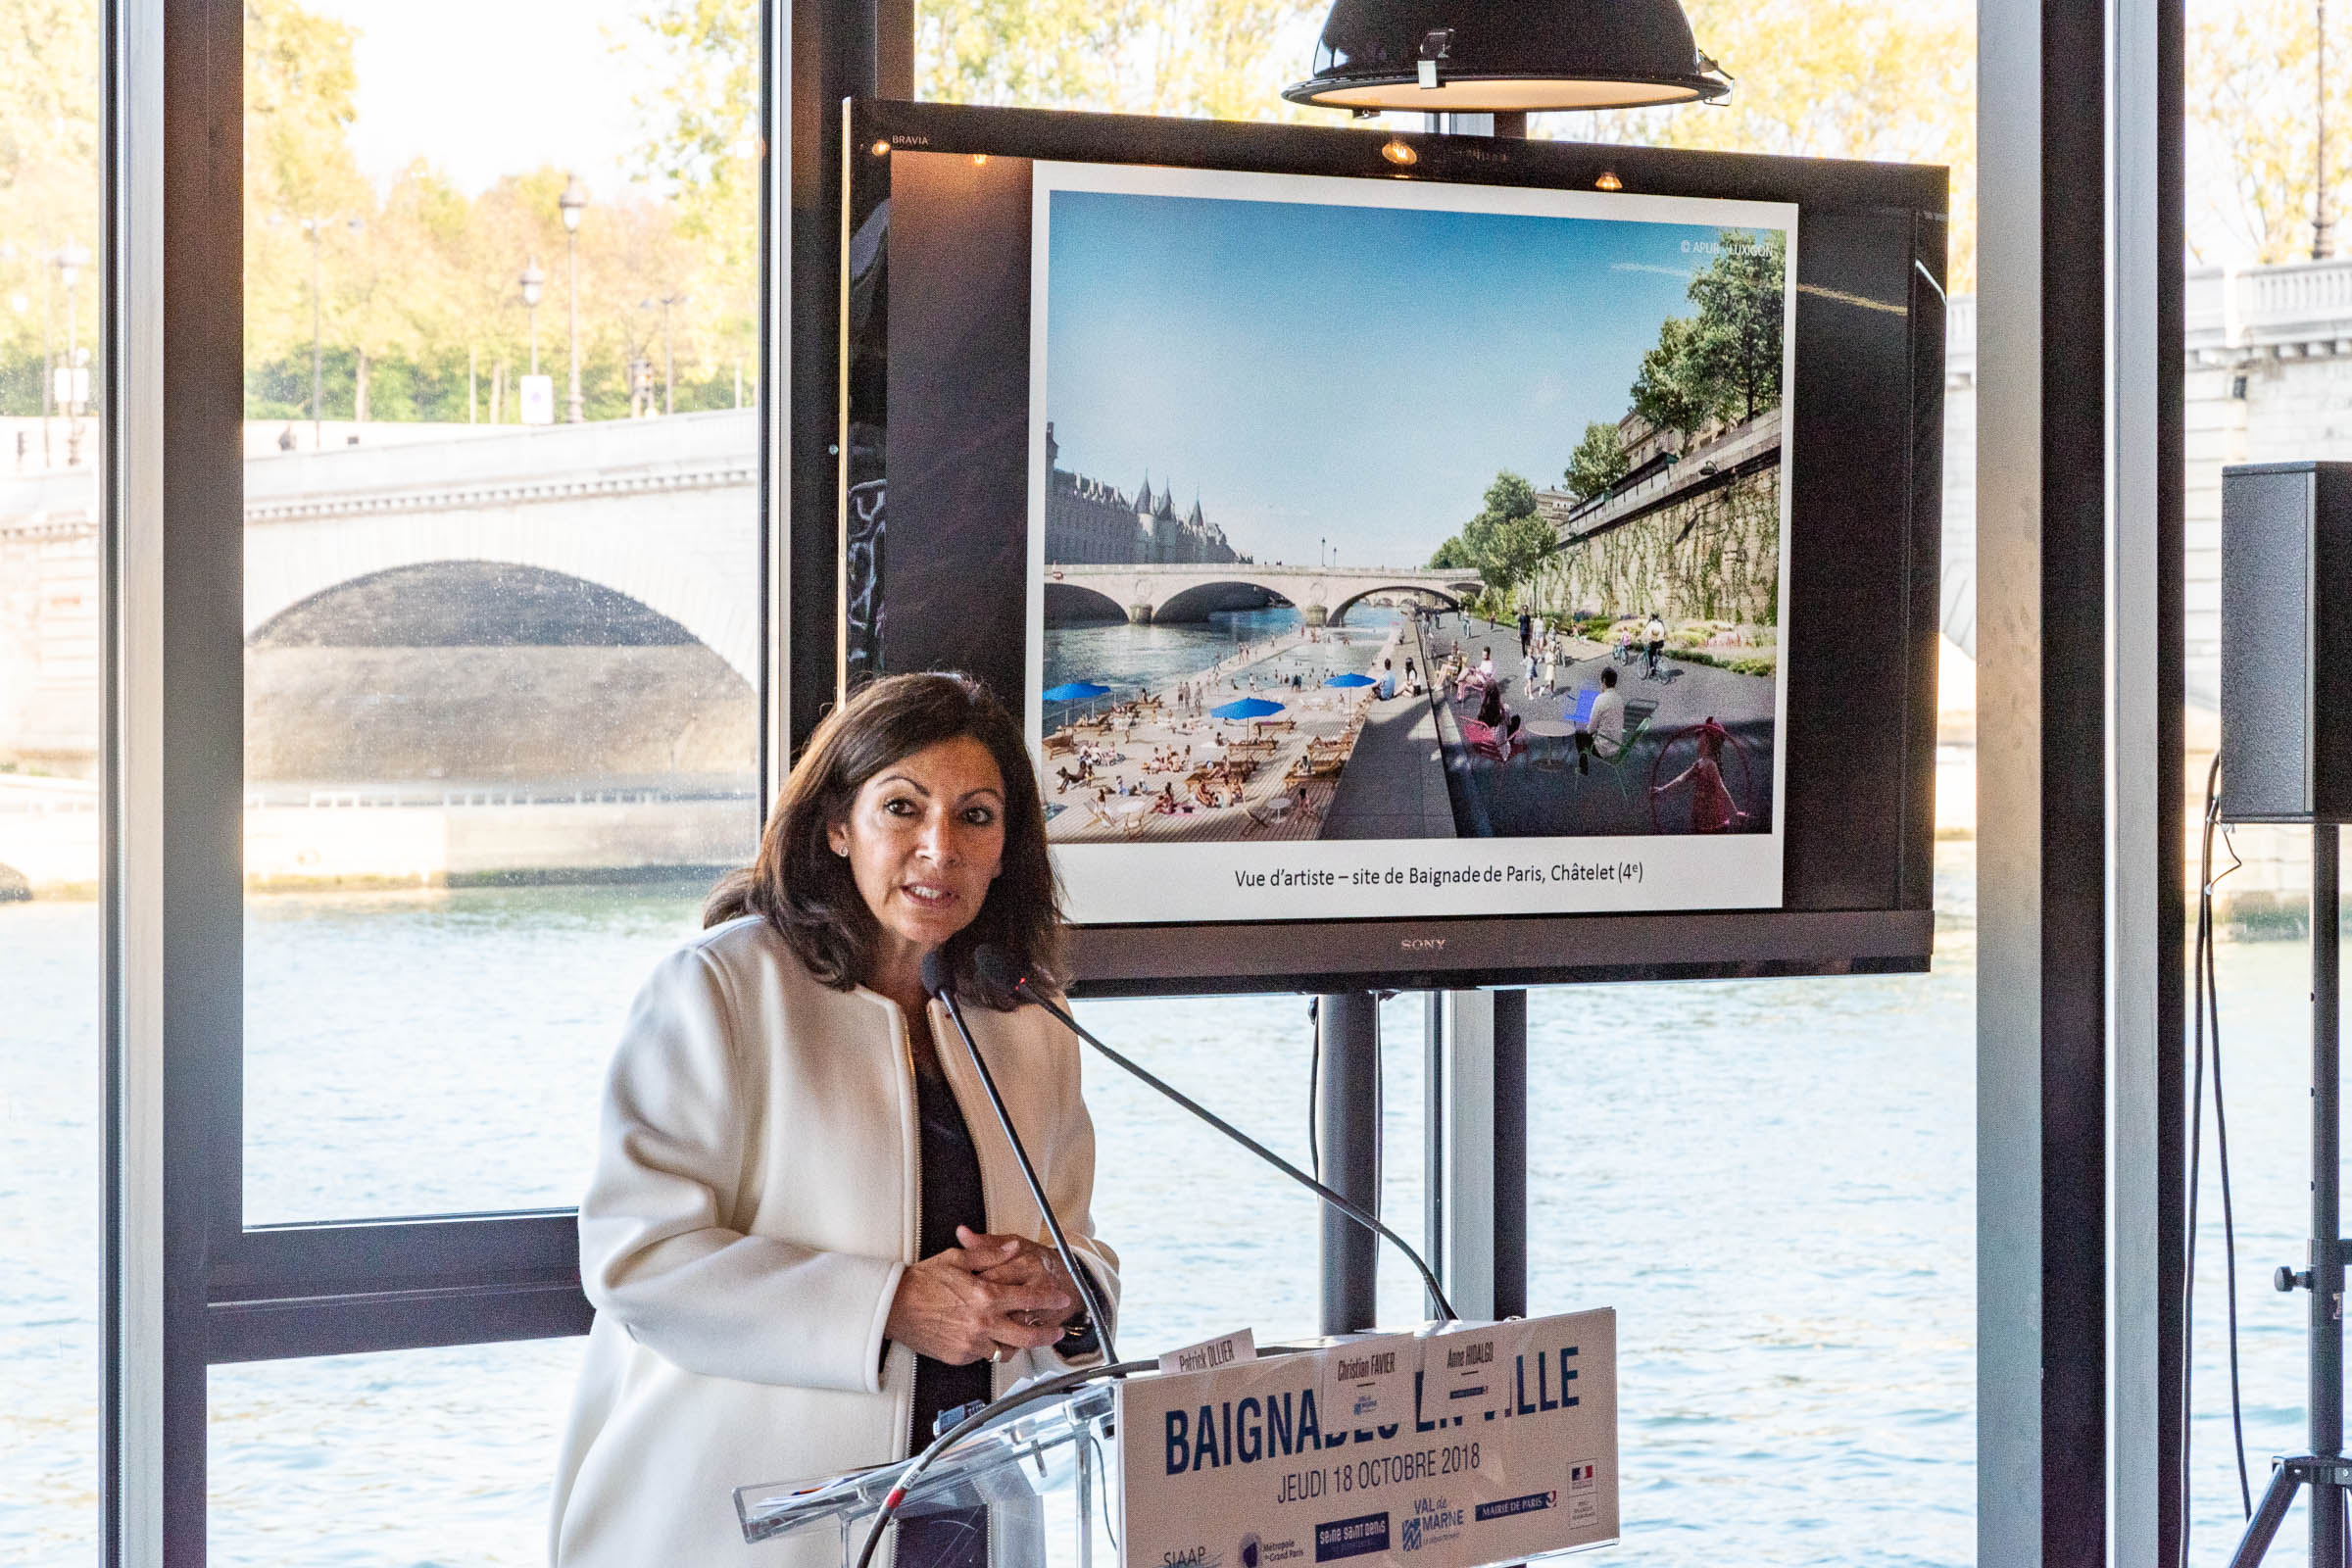 Anne Hidalgo in front of a visualization of one of the future swimming pools in the Seine, scheduled for completion in 2025.